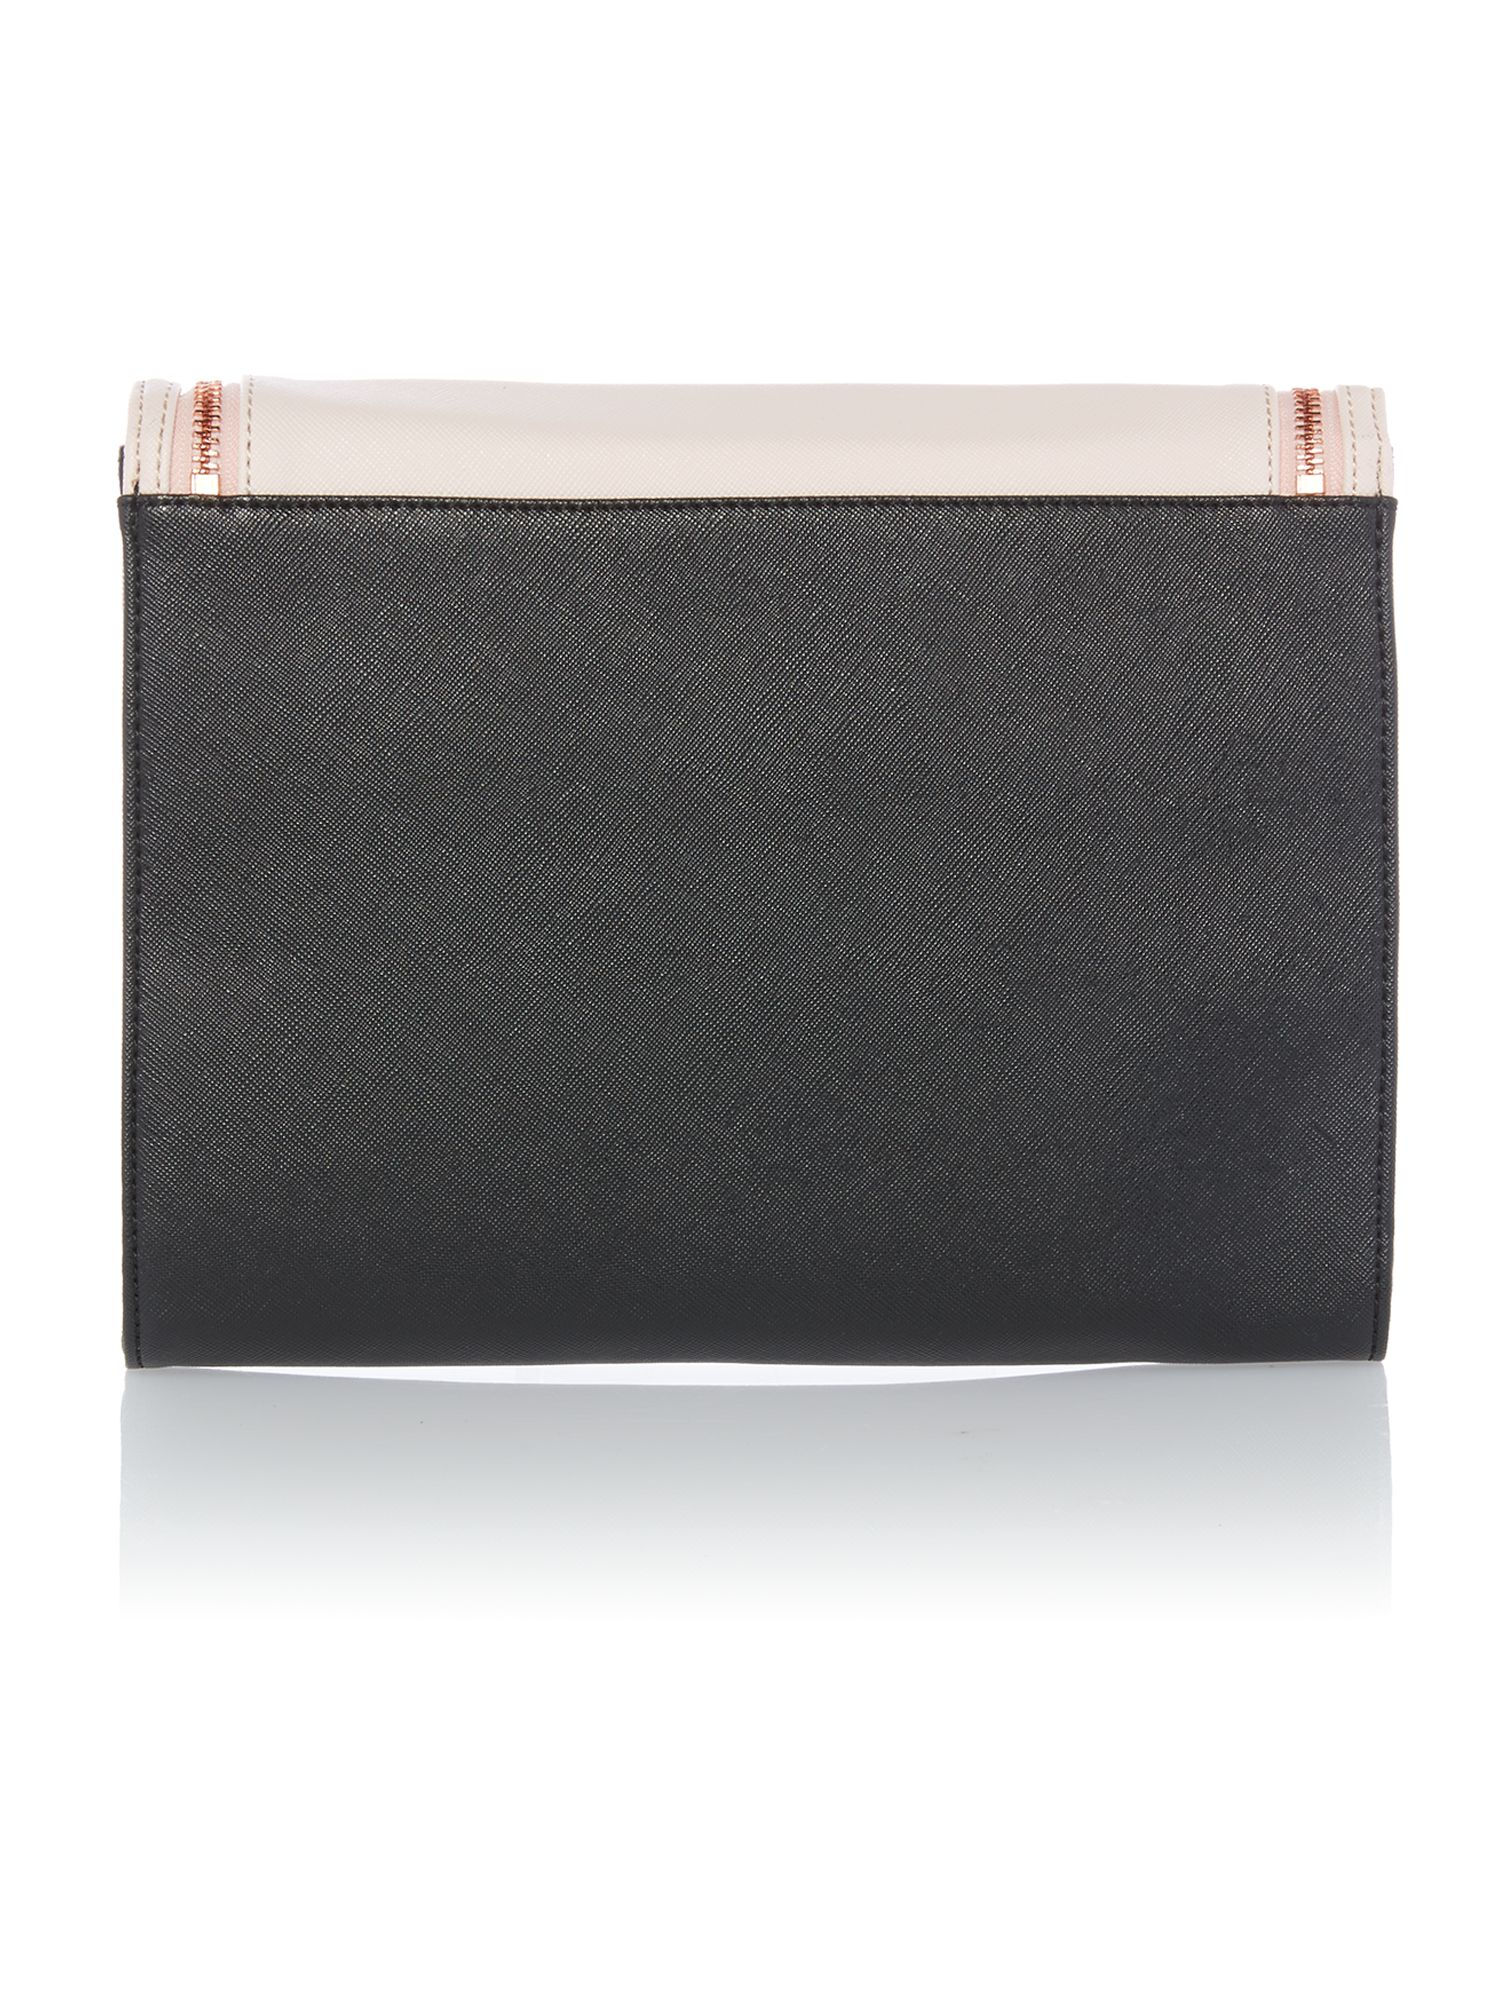 Medium black and nude clutch bag